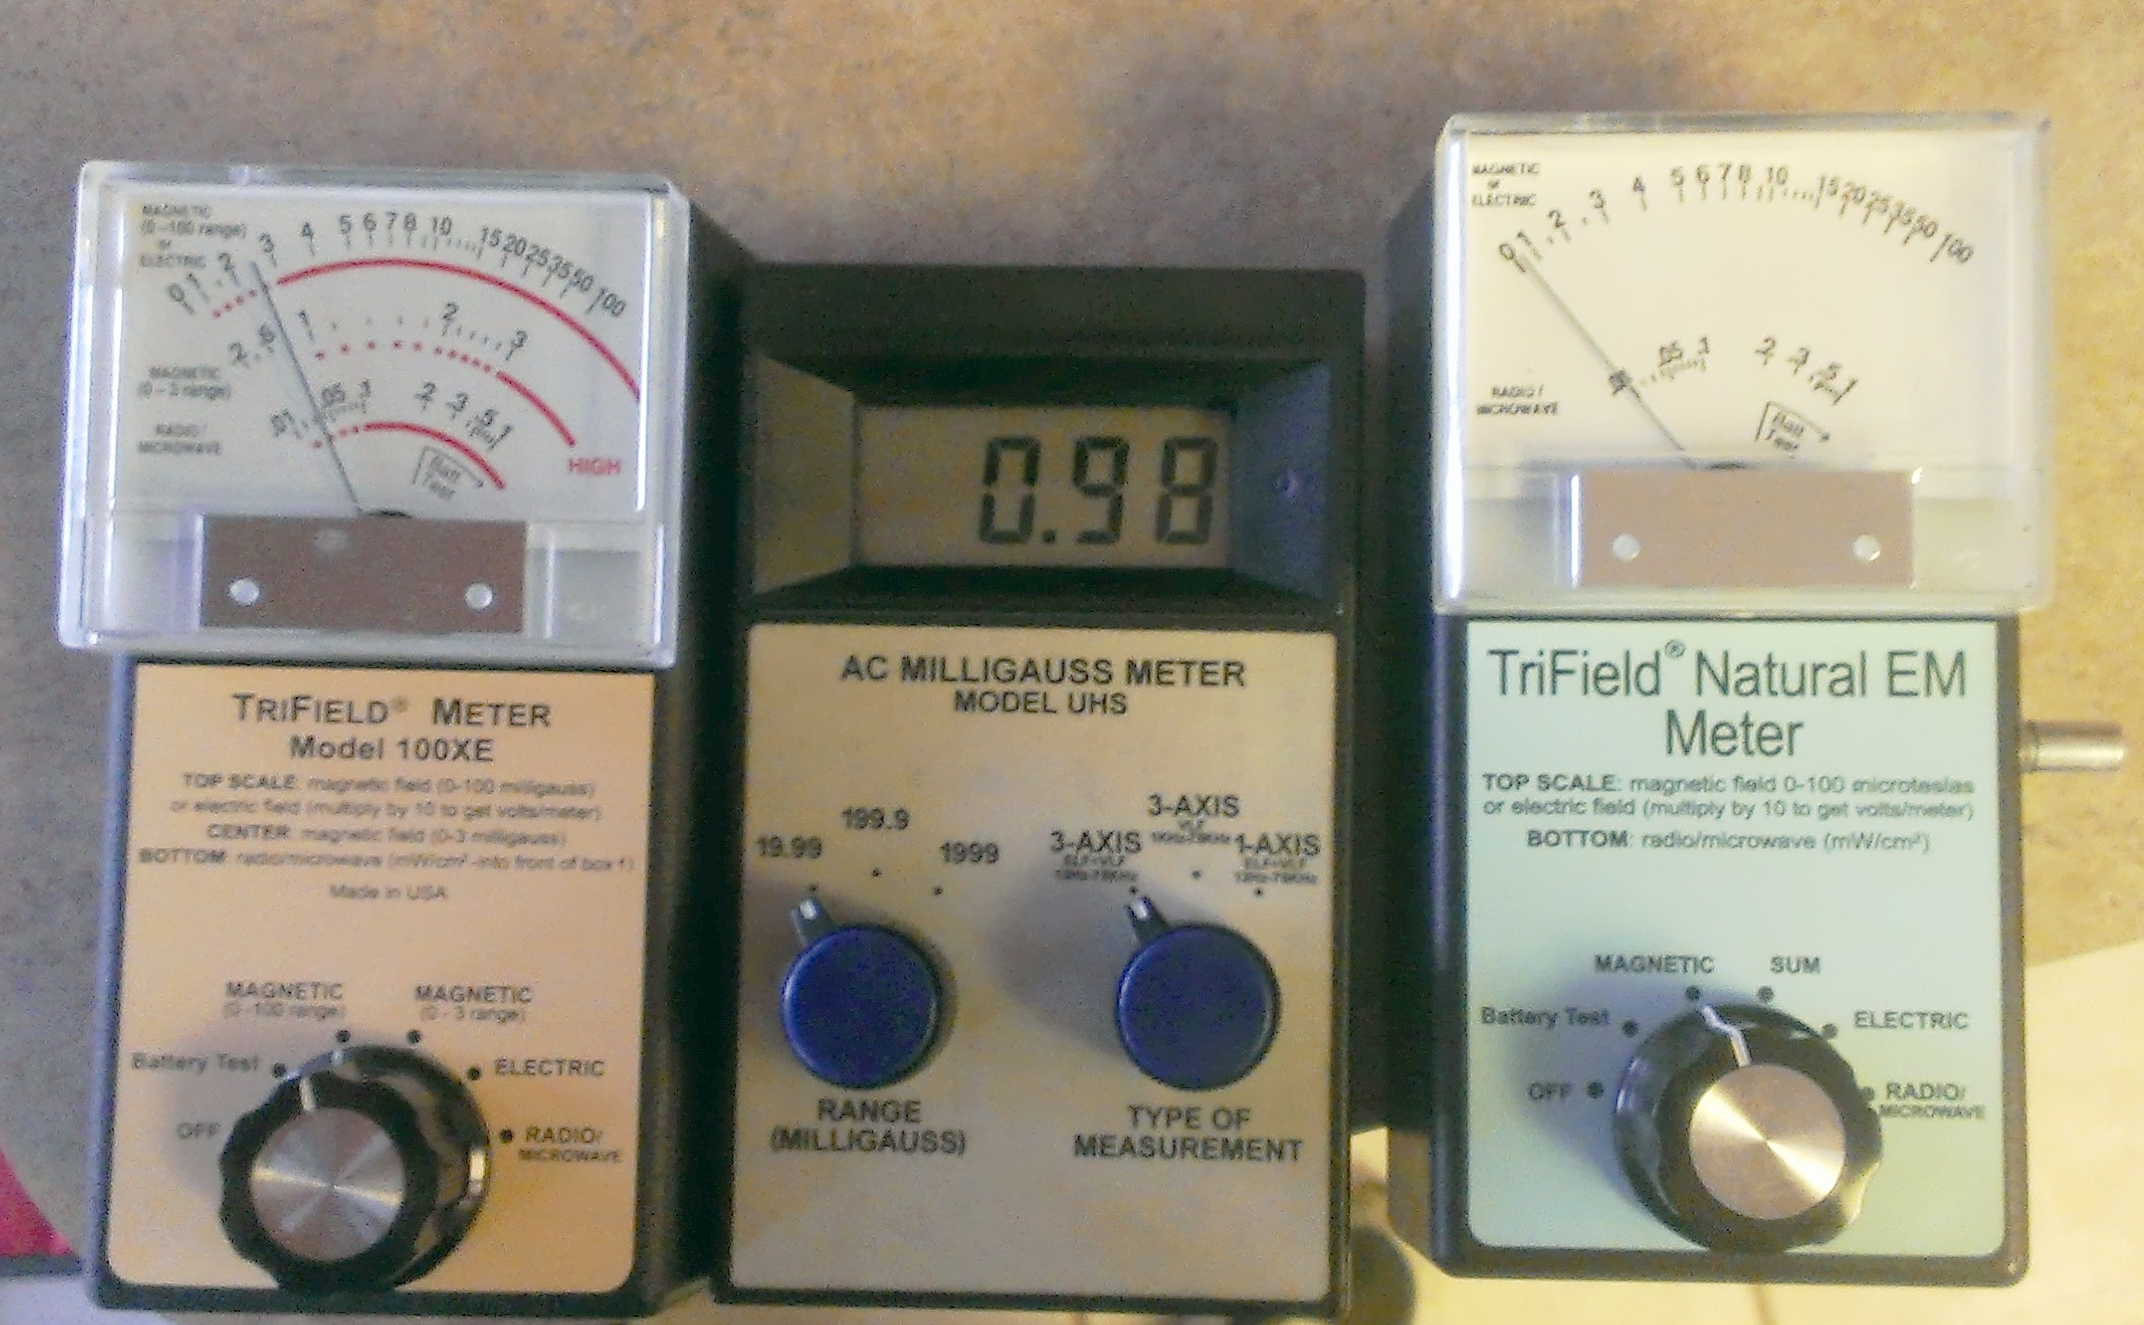 Using the Wrong EMF Meter for Home Inspections: A Case Study in